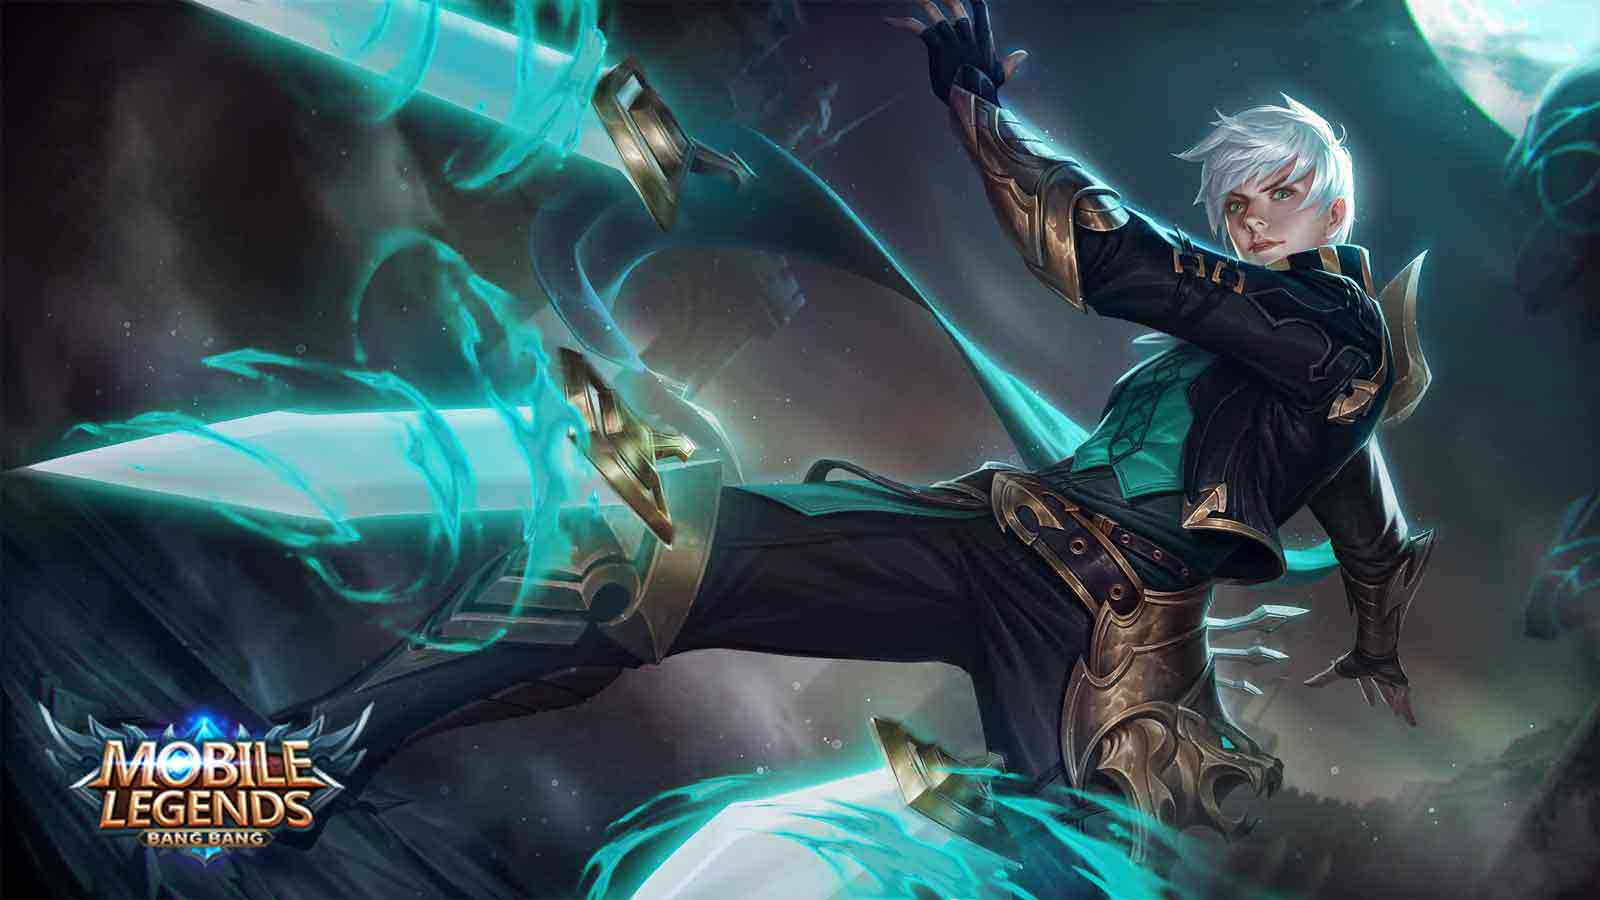 Mobile Legends Wallpapers Skin Gusion Mobile Legend